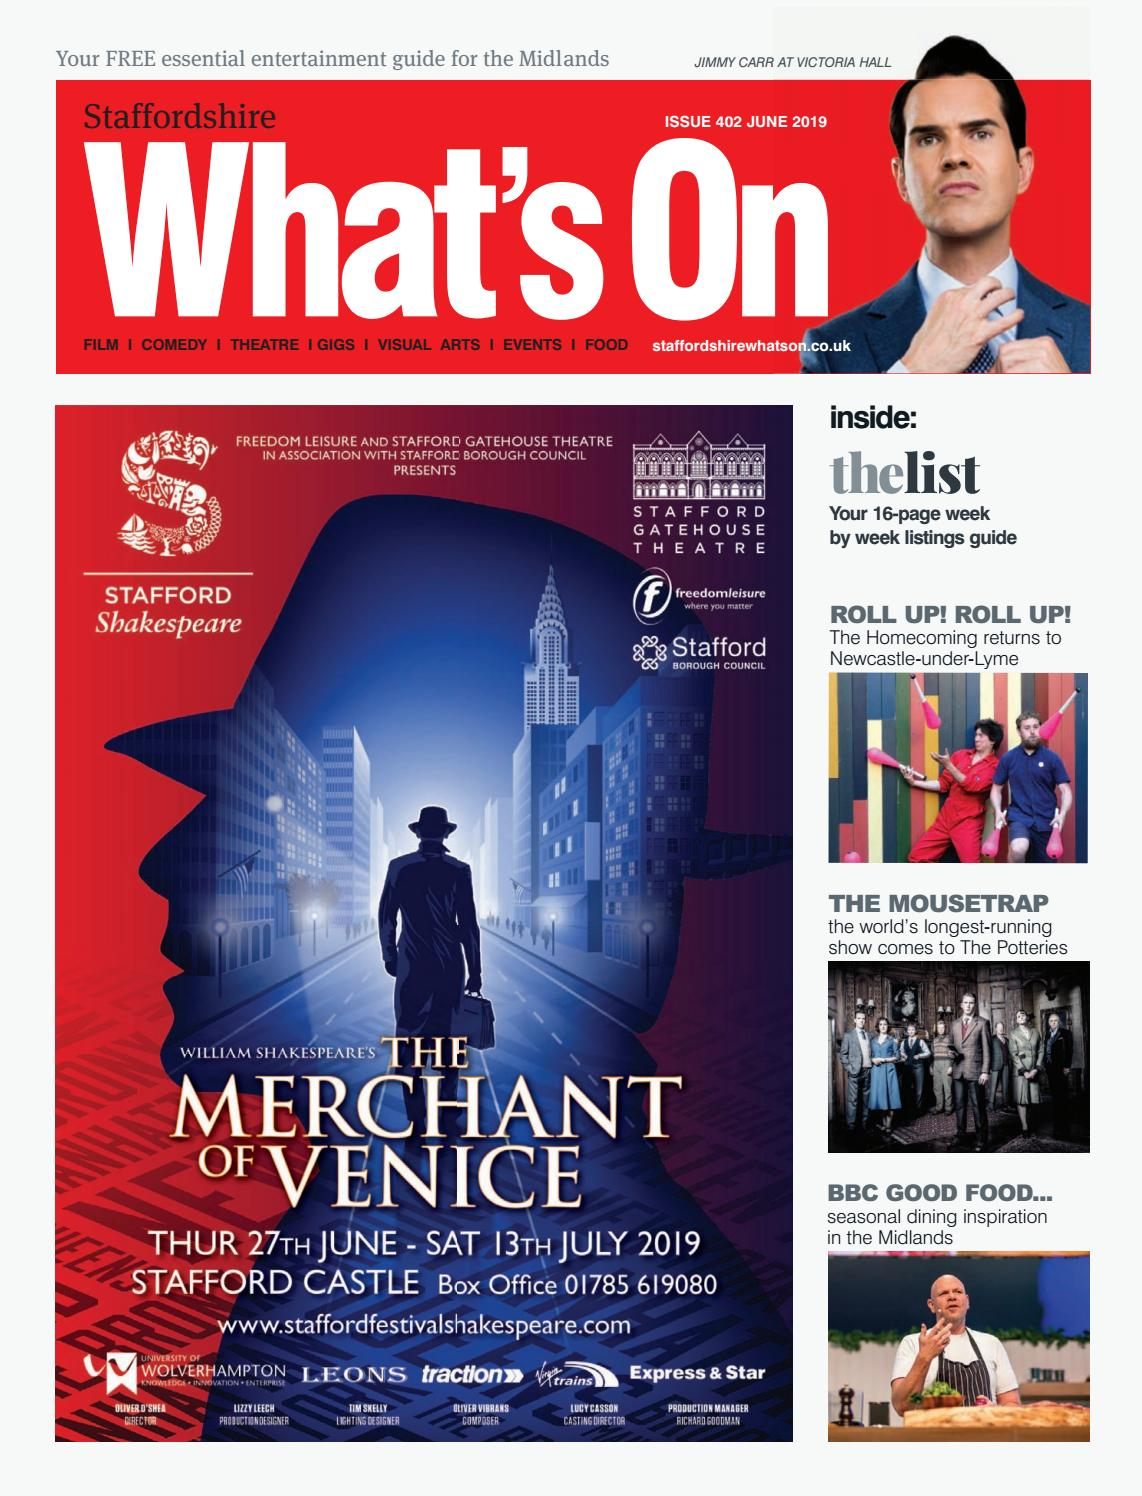 Staffordshire What's On June 2019 by What's On Magazine for